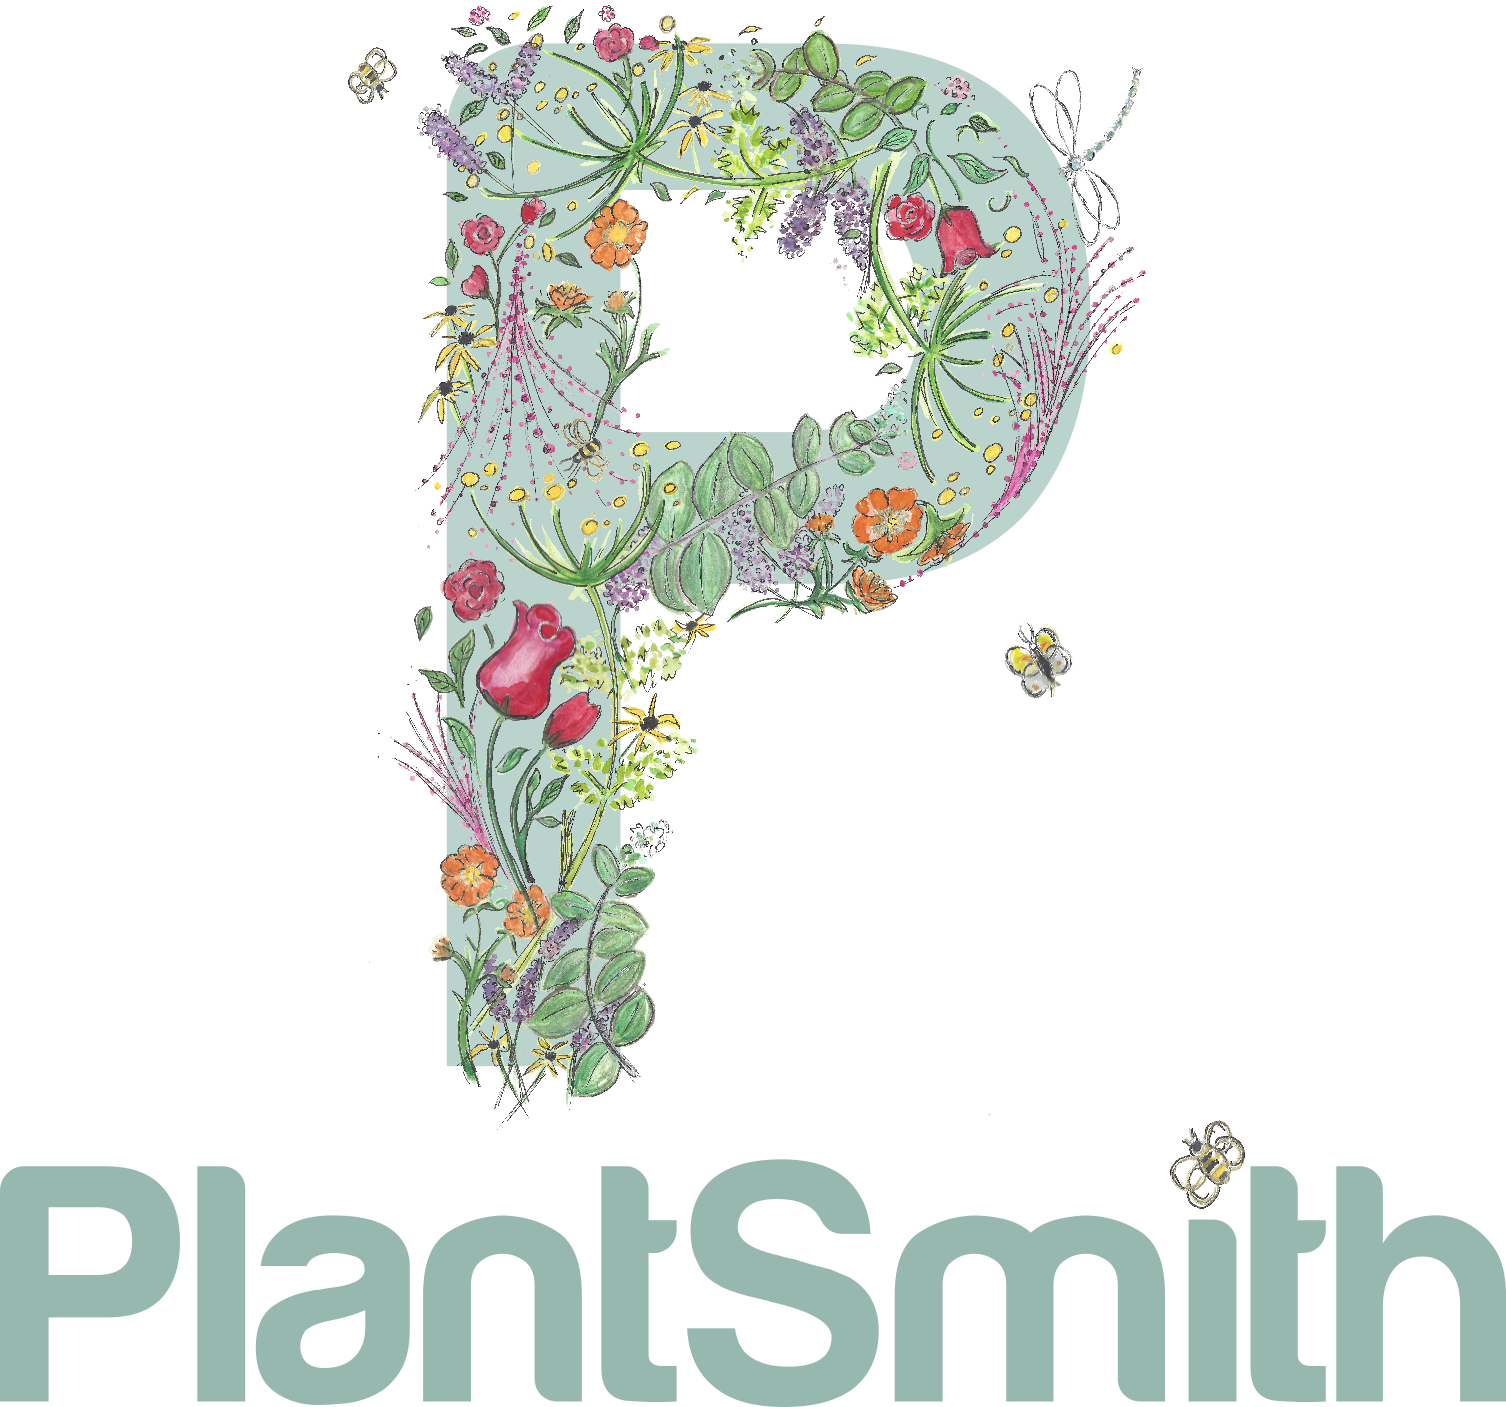 The PlantSmith Design and Horticulture